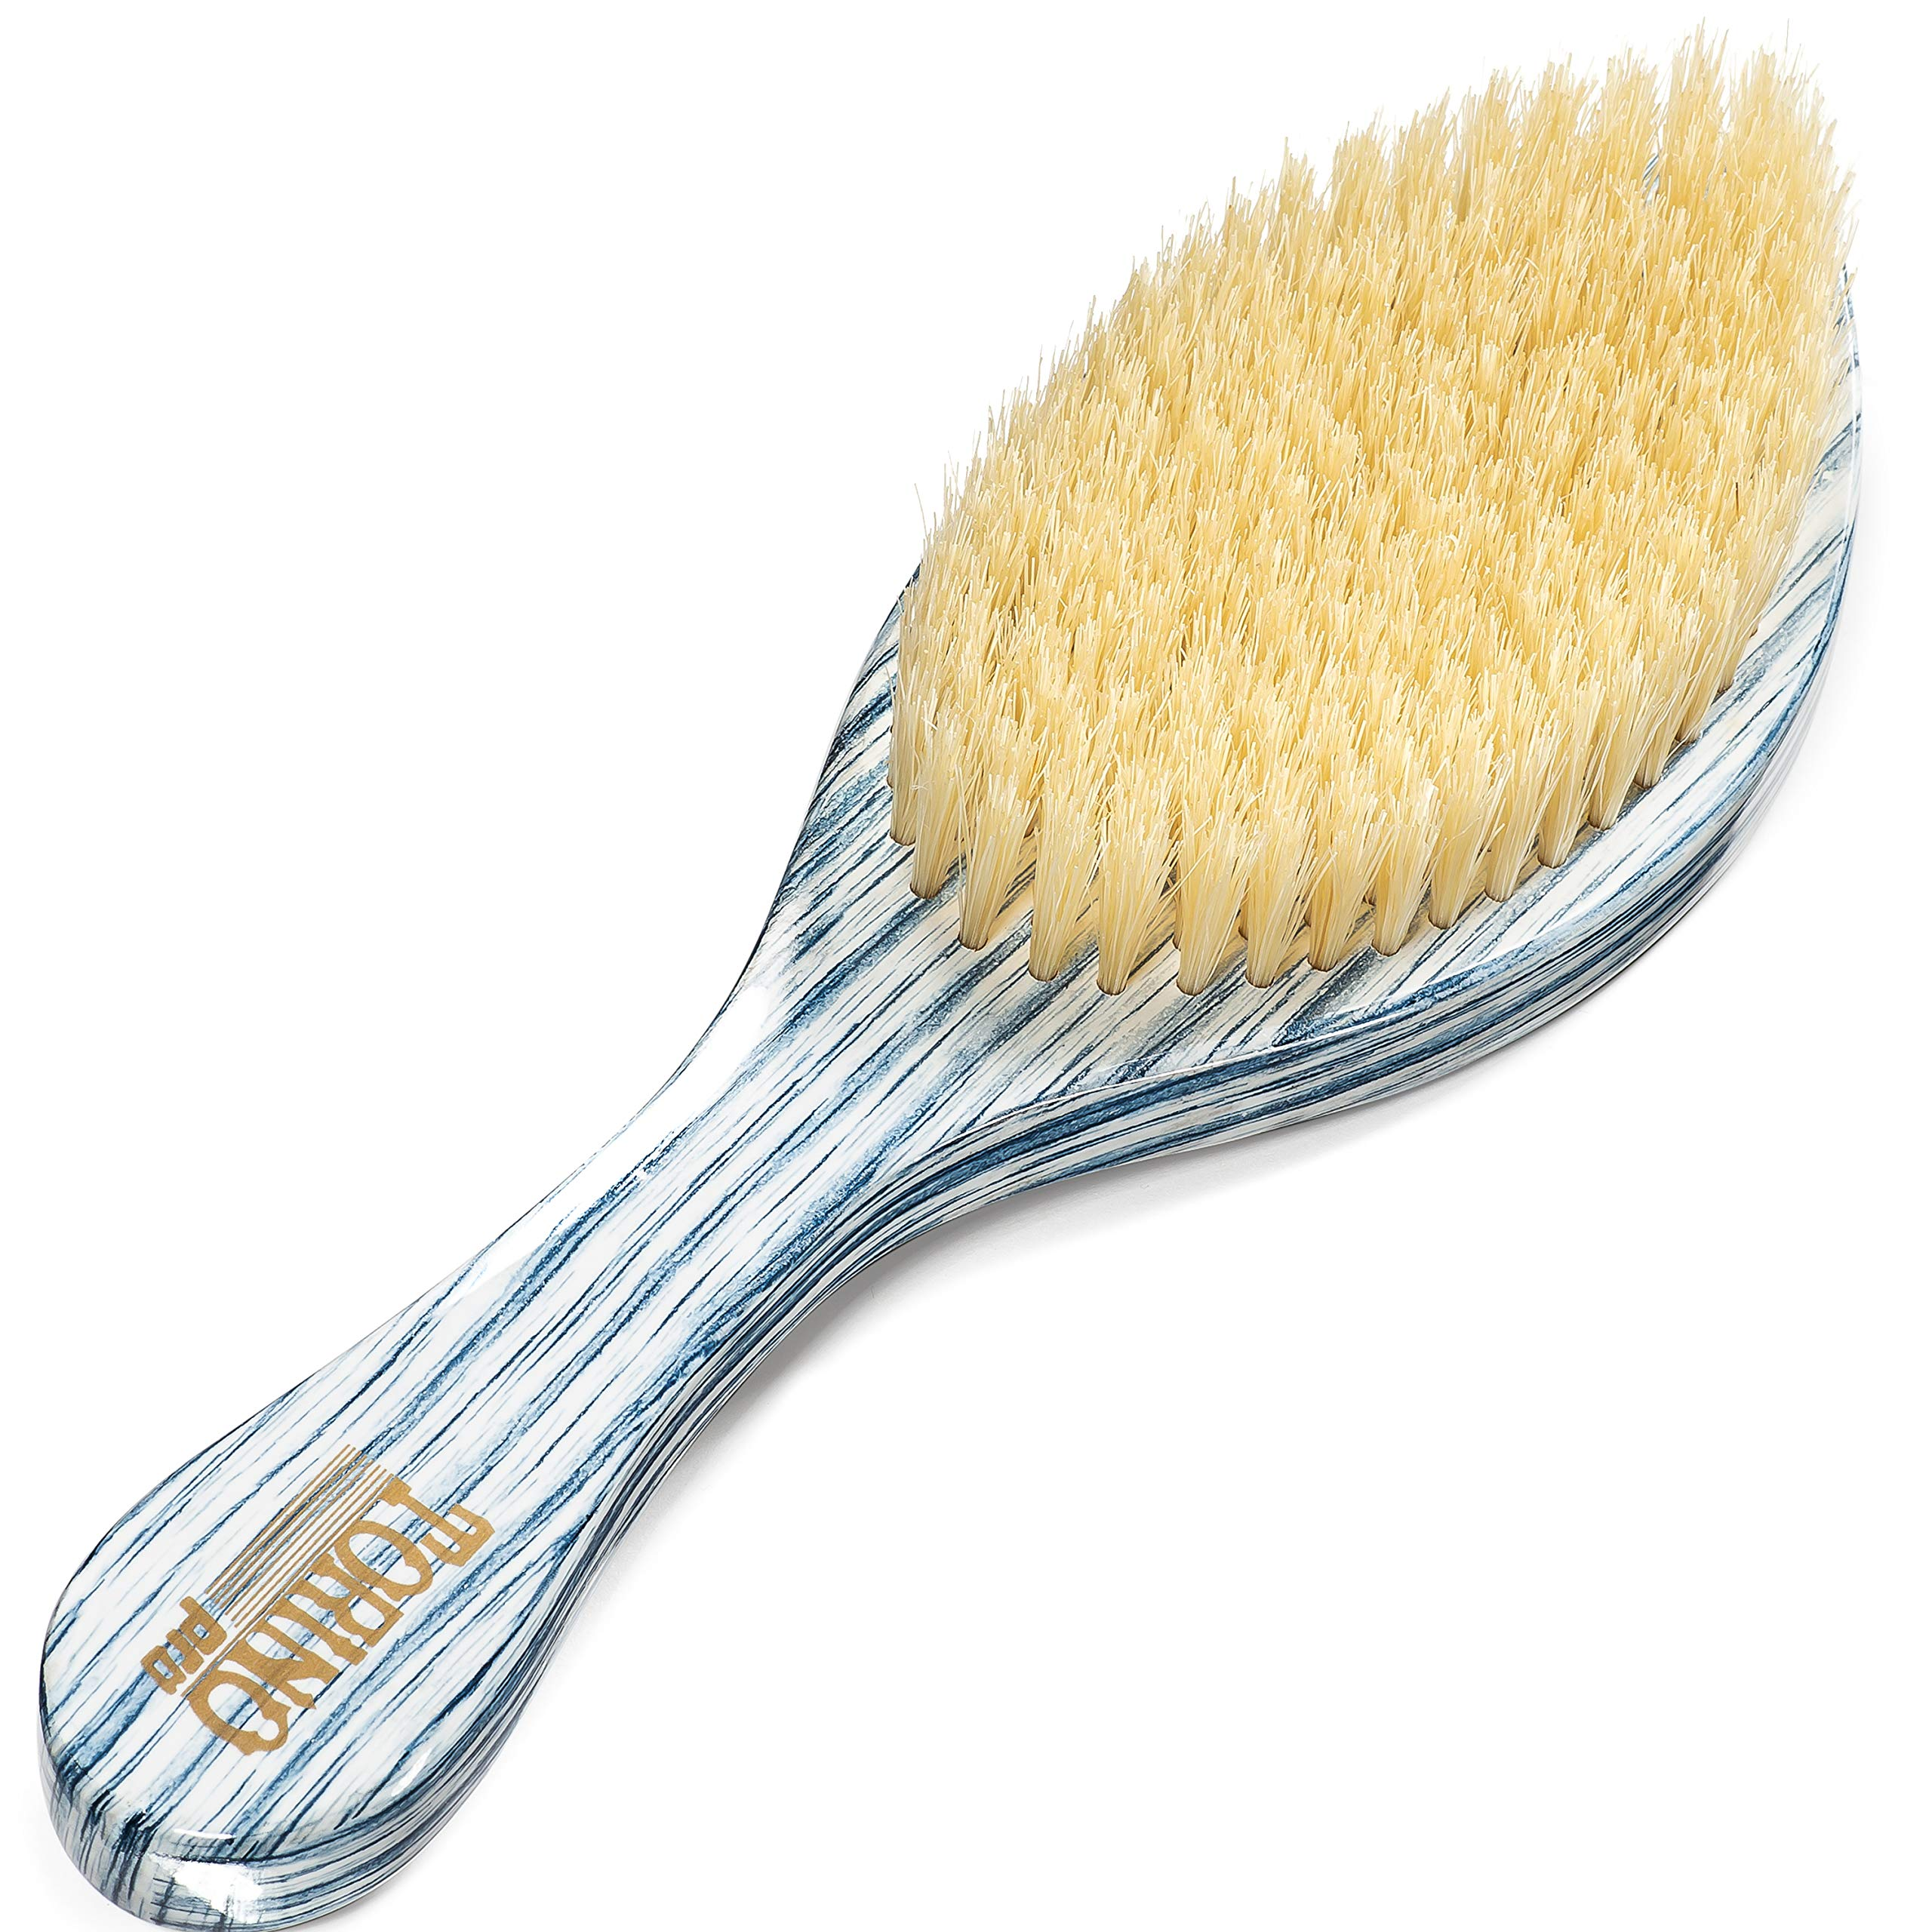 Torino Pro Medium Curve Wave Brush By Brush King - #1990-360 Curved Medium  Waves brush - Great for beginners to develop wave and also great for